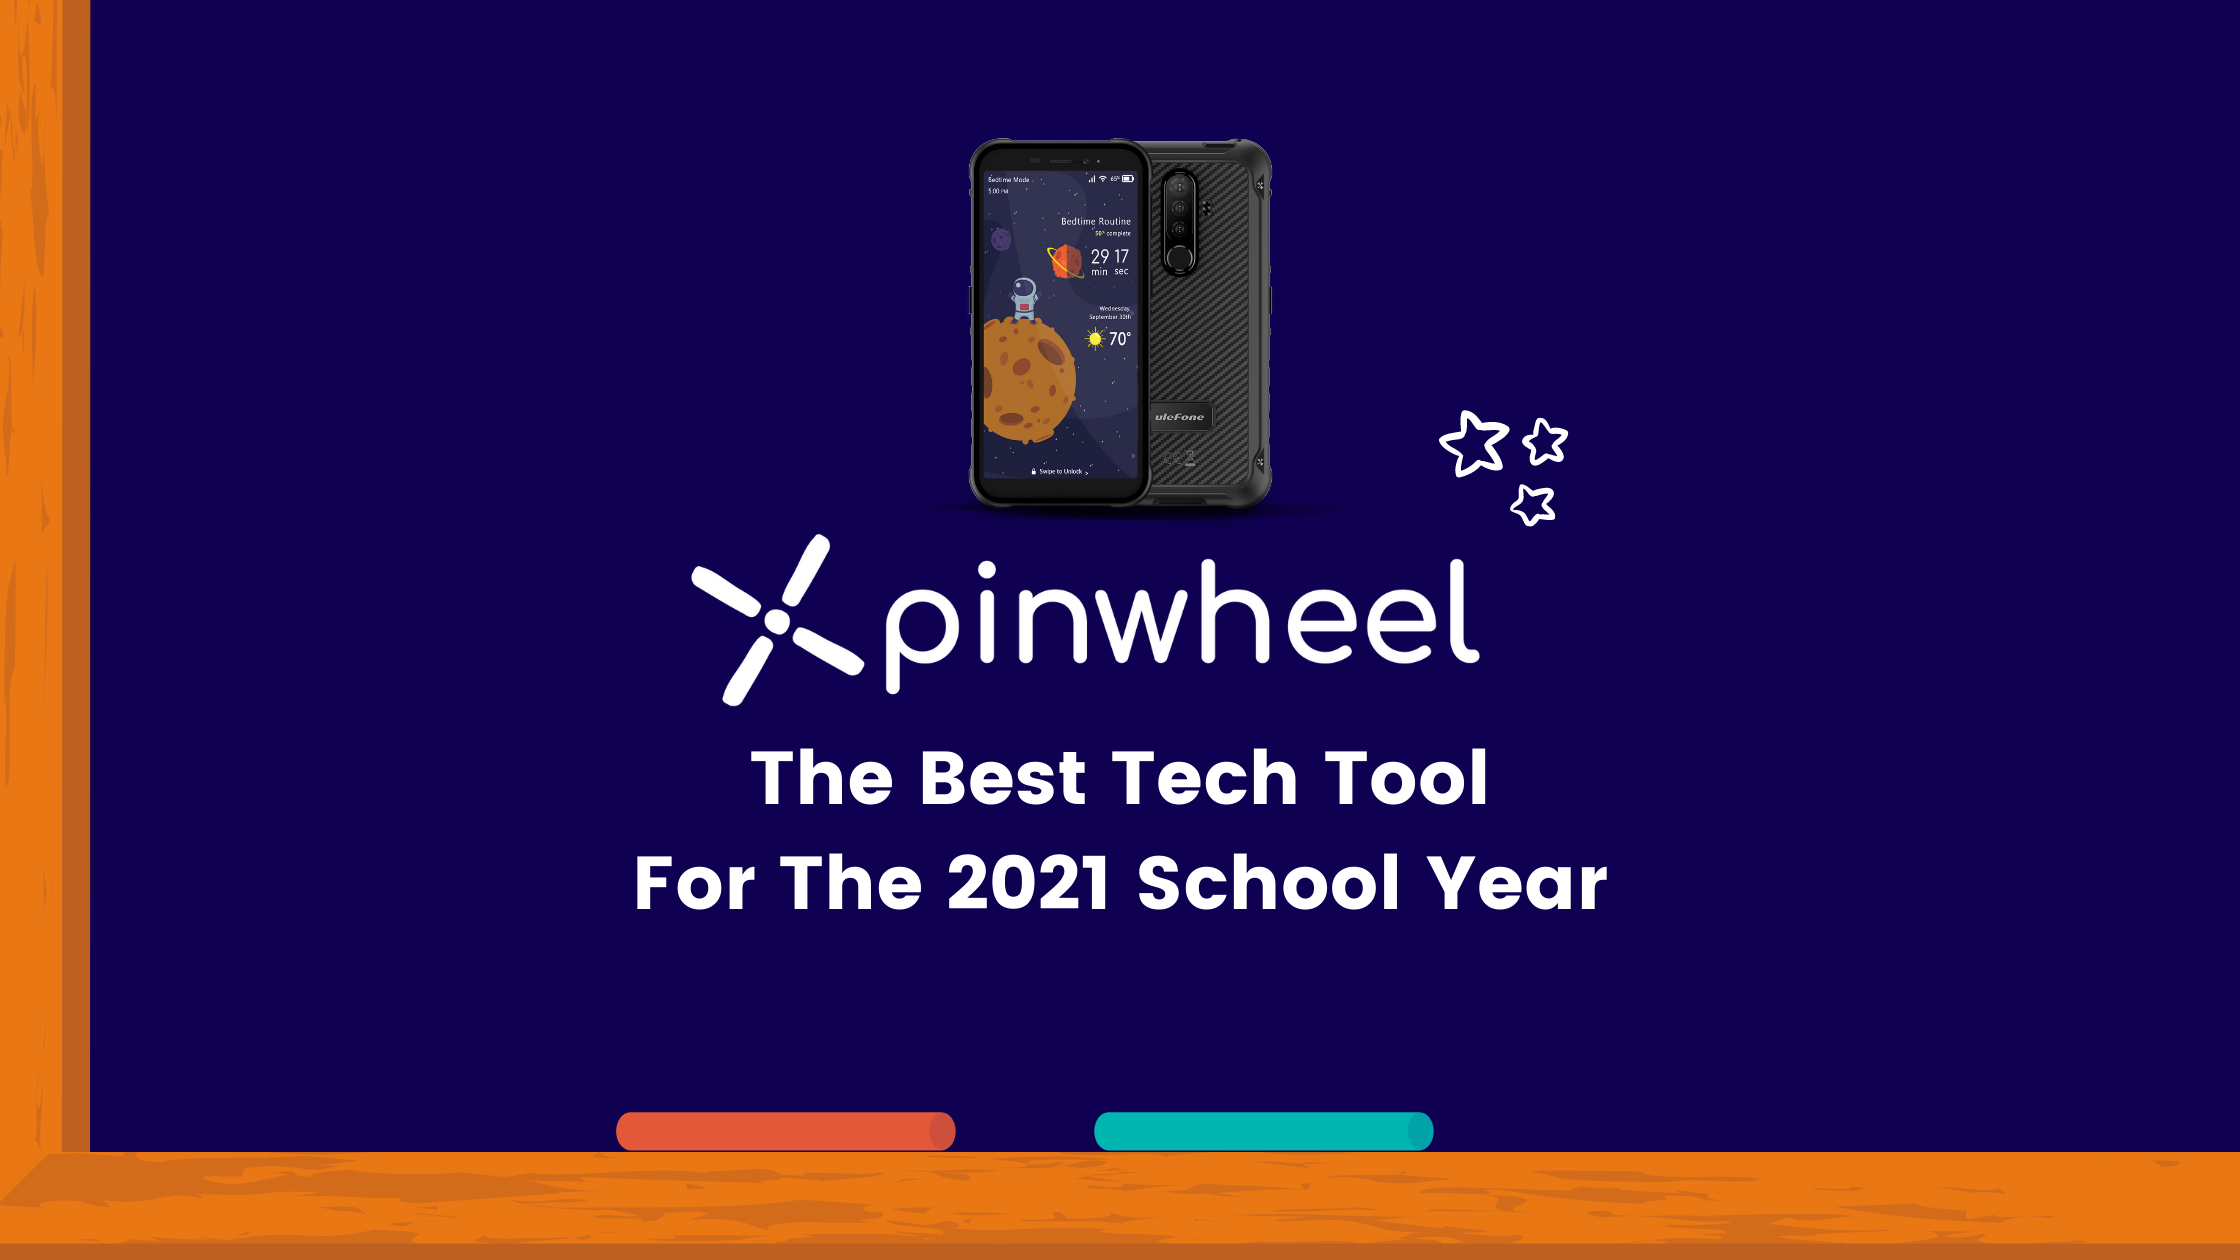 Chalkboard With Image Of Pinwheel Cell Phone - Best Tech Tool For 2021 School Year